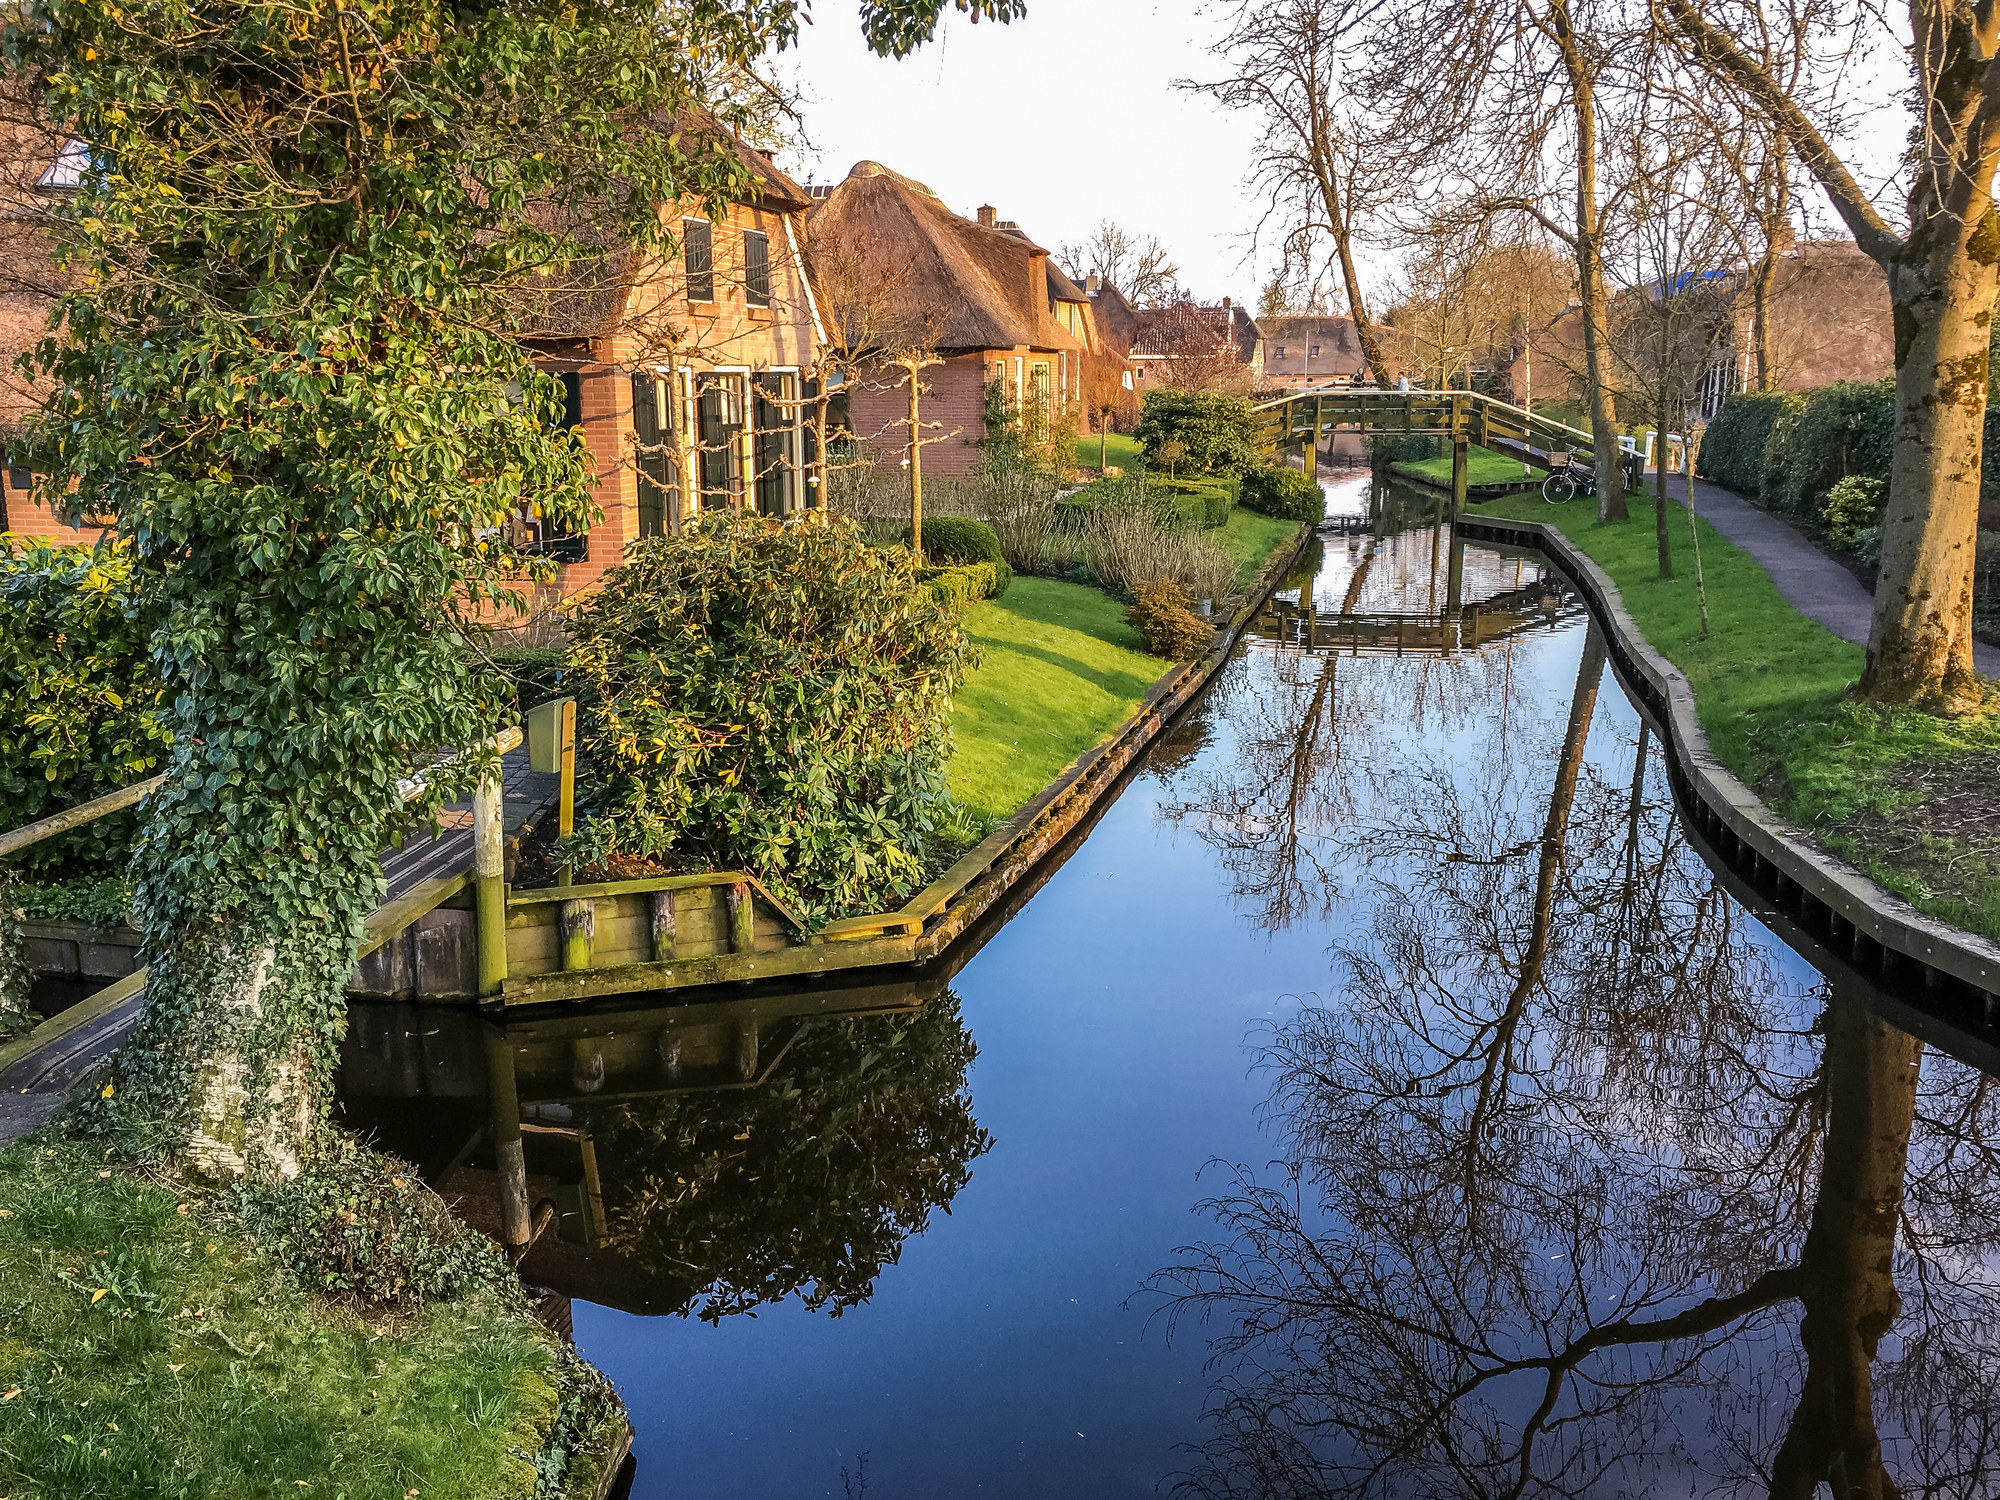 A canal in Giethoorn.